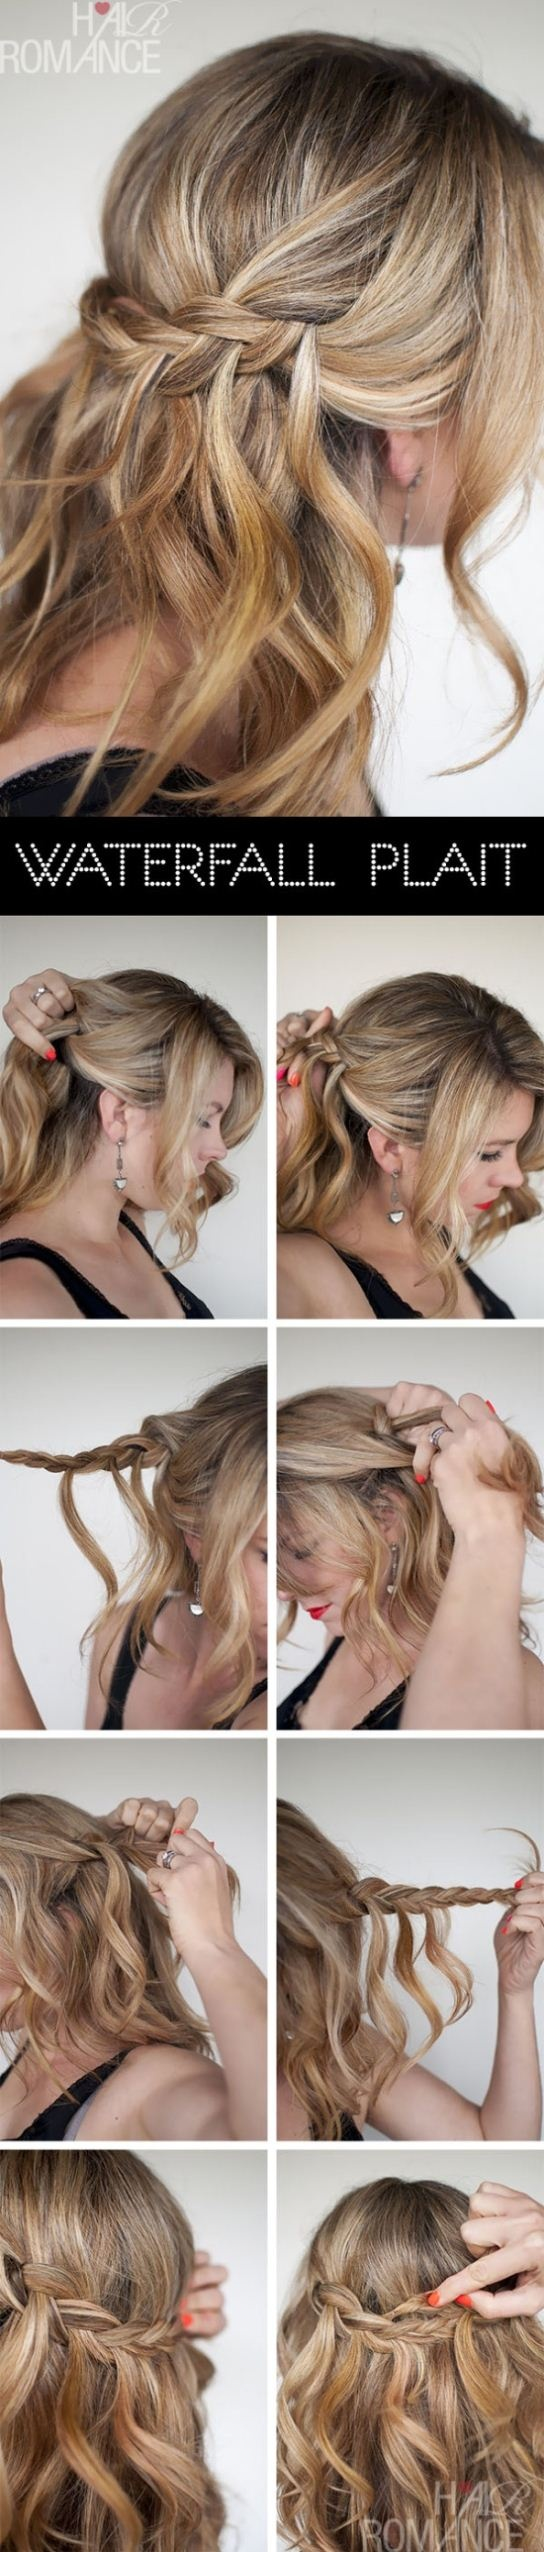 DIY waterfall braid hairstyle over